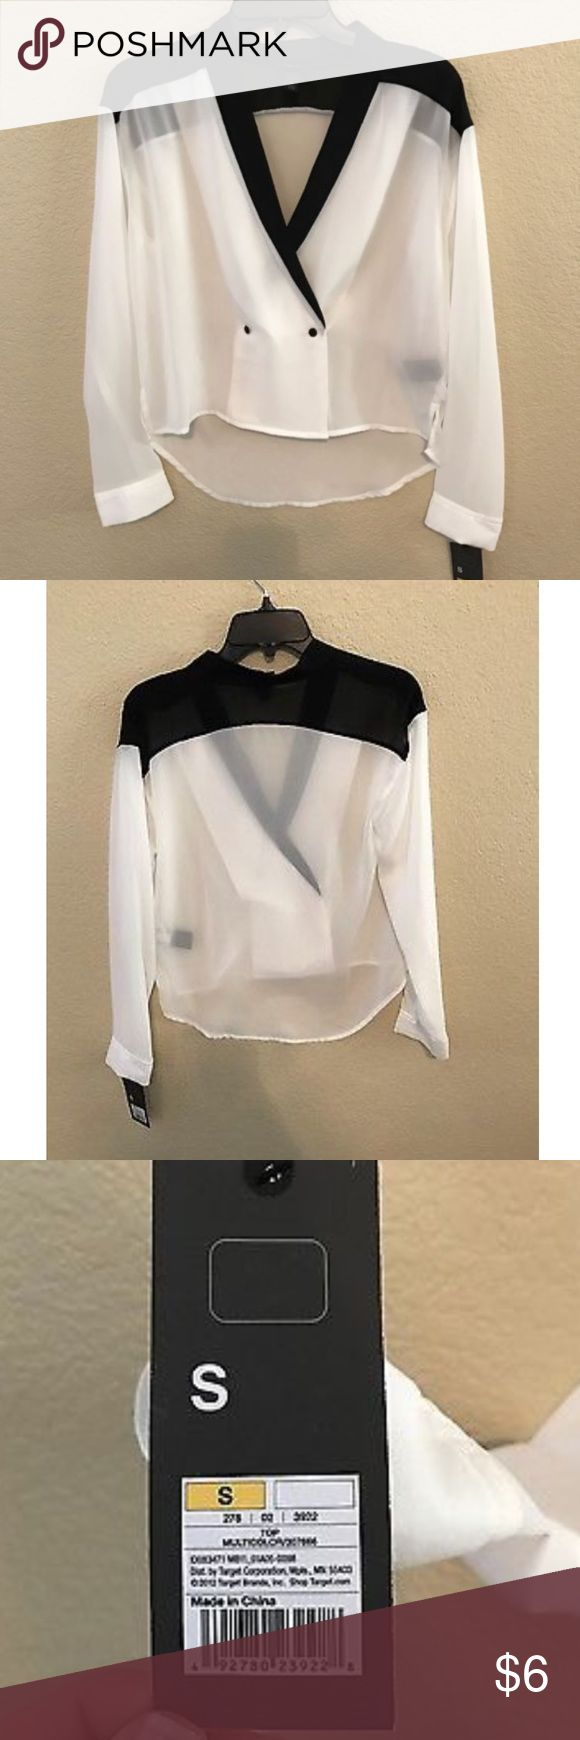 NWT Mossimo tuxedo sheer top black and white NWT Mossimo tuxedo sheer top black and white size Small. Size small. unique look! Mossimo Supply Co Tops Blouses